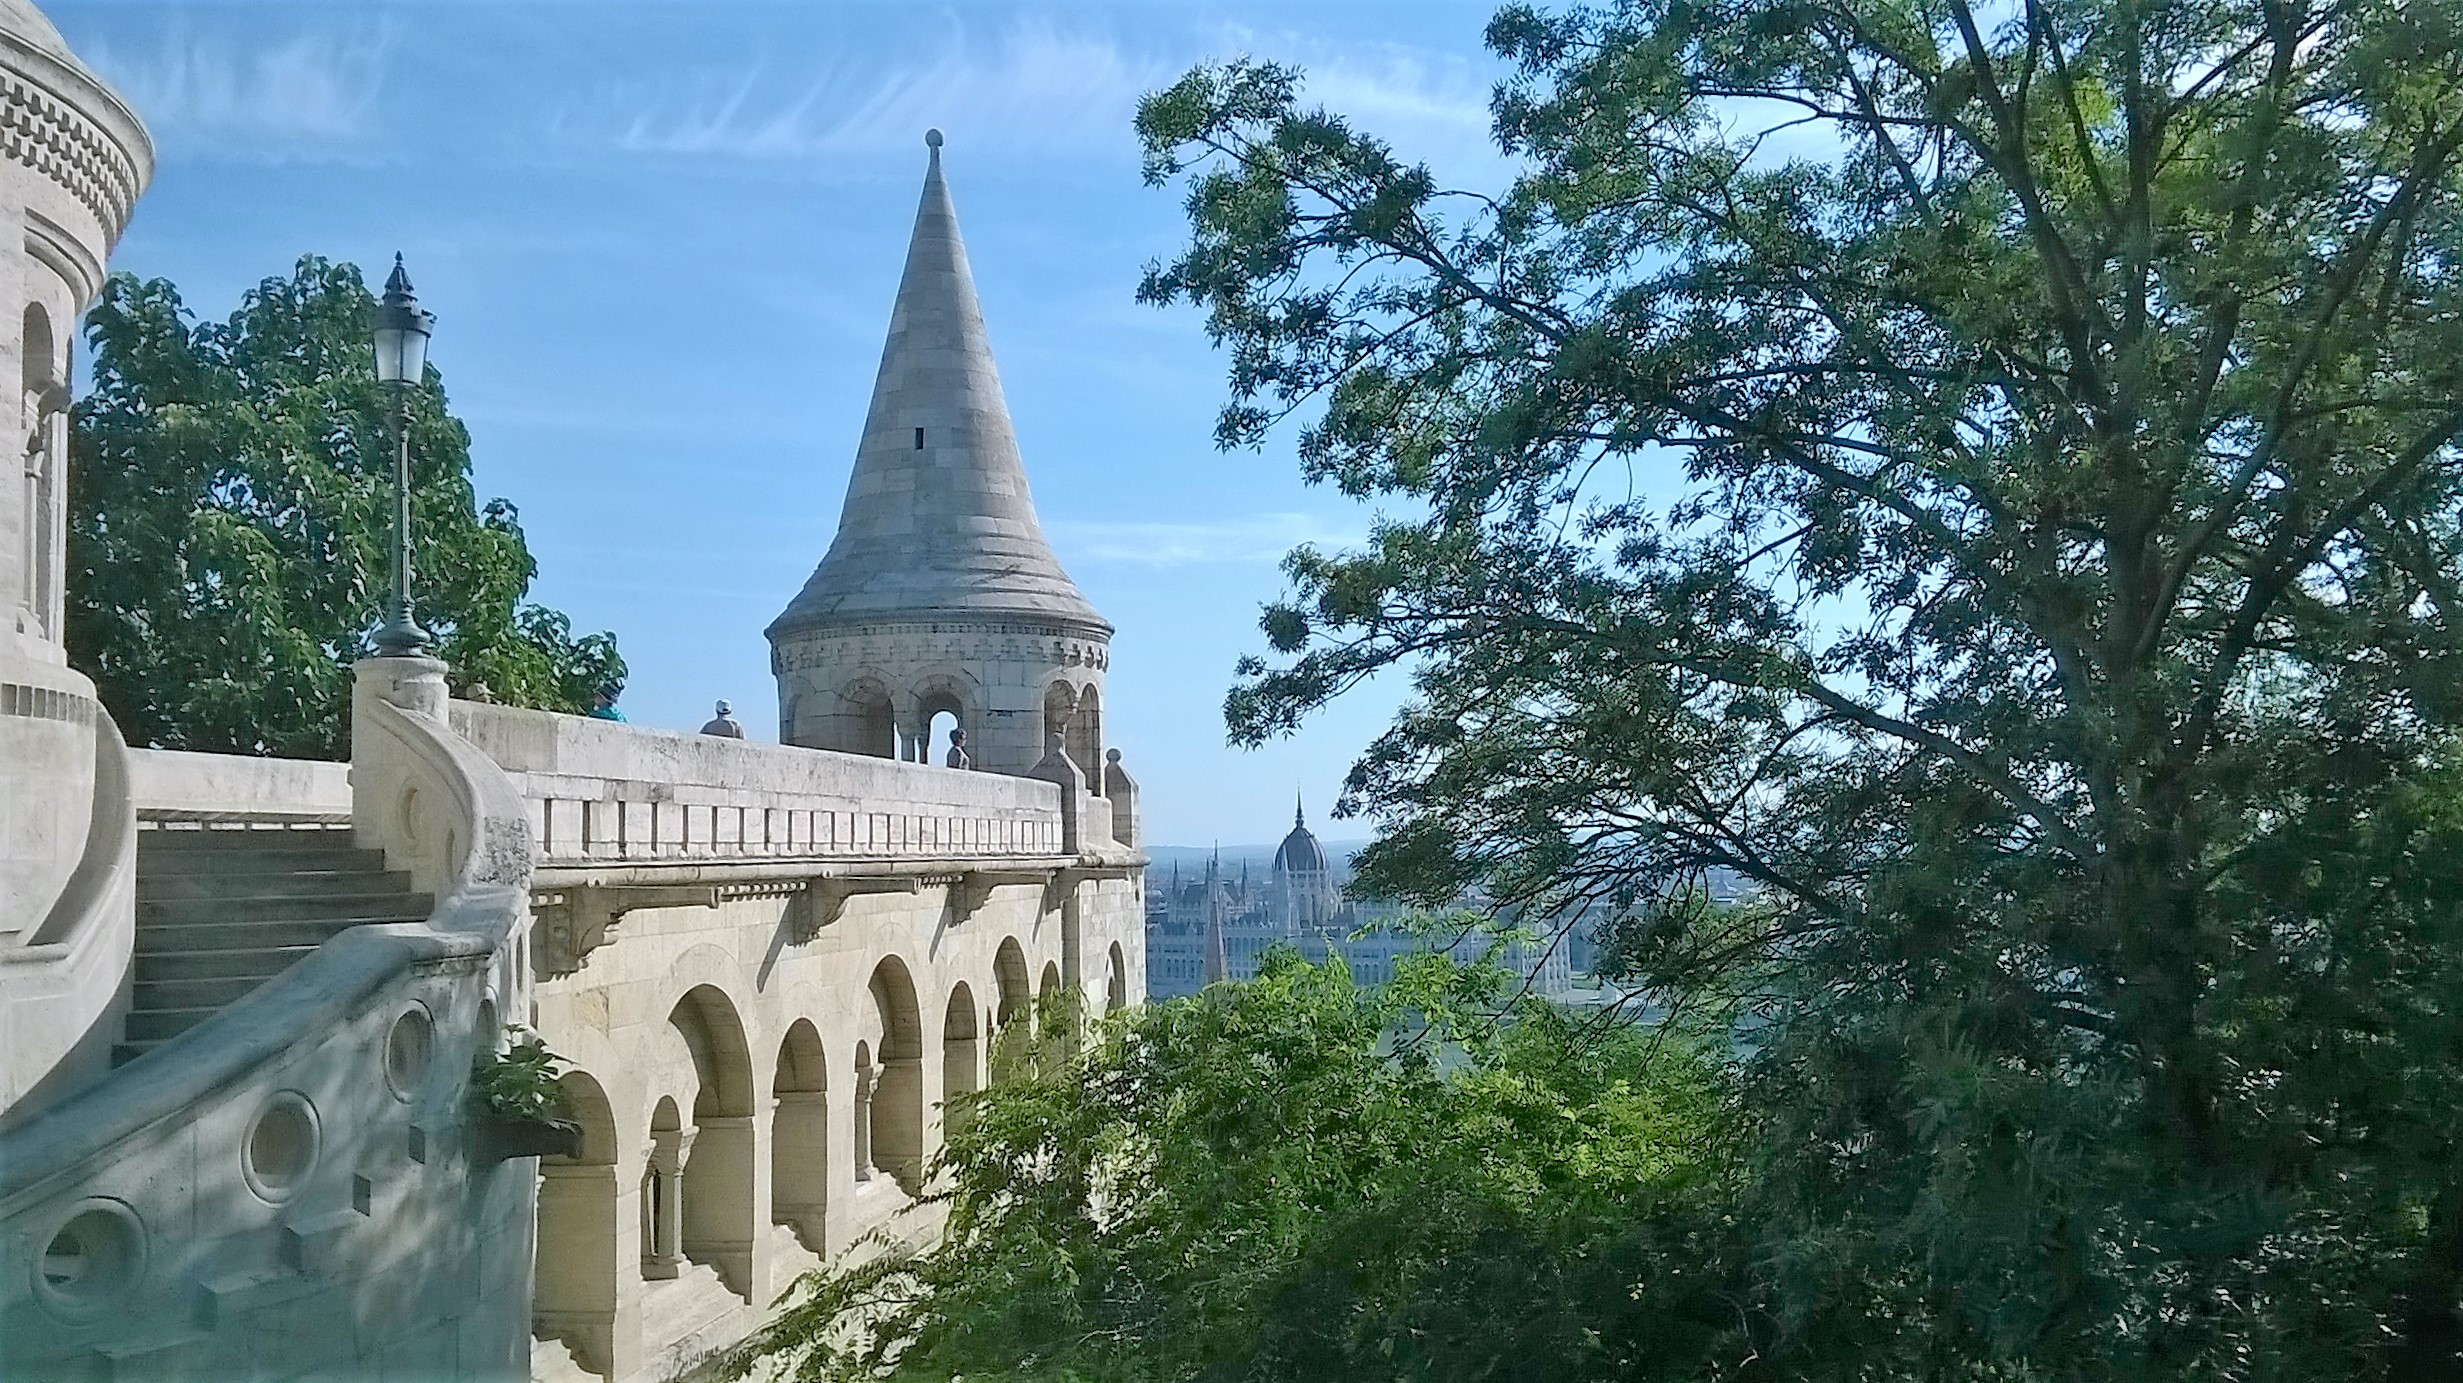 Budapest, Buda Castle District, Buda Walking Tour - Private Buda Castle Walk by Julia Kravianszky.